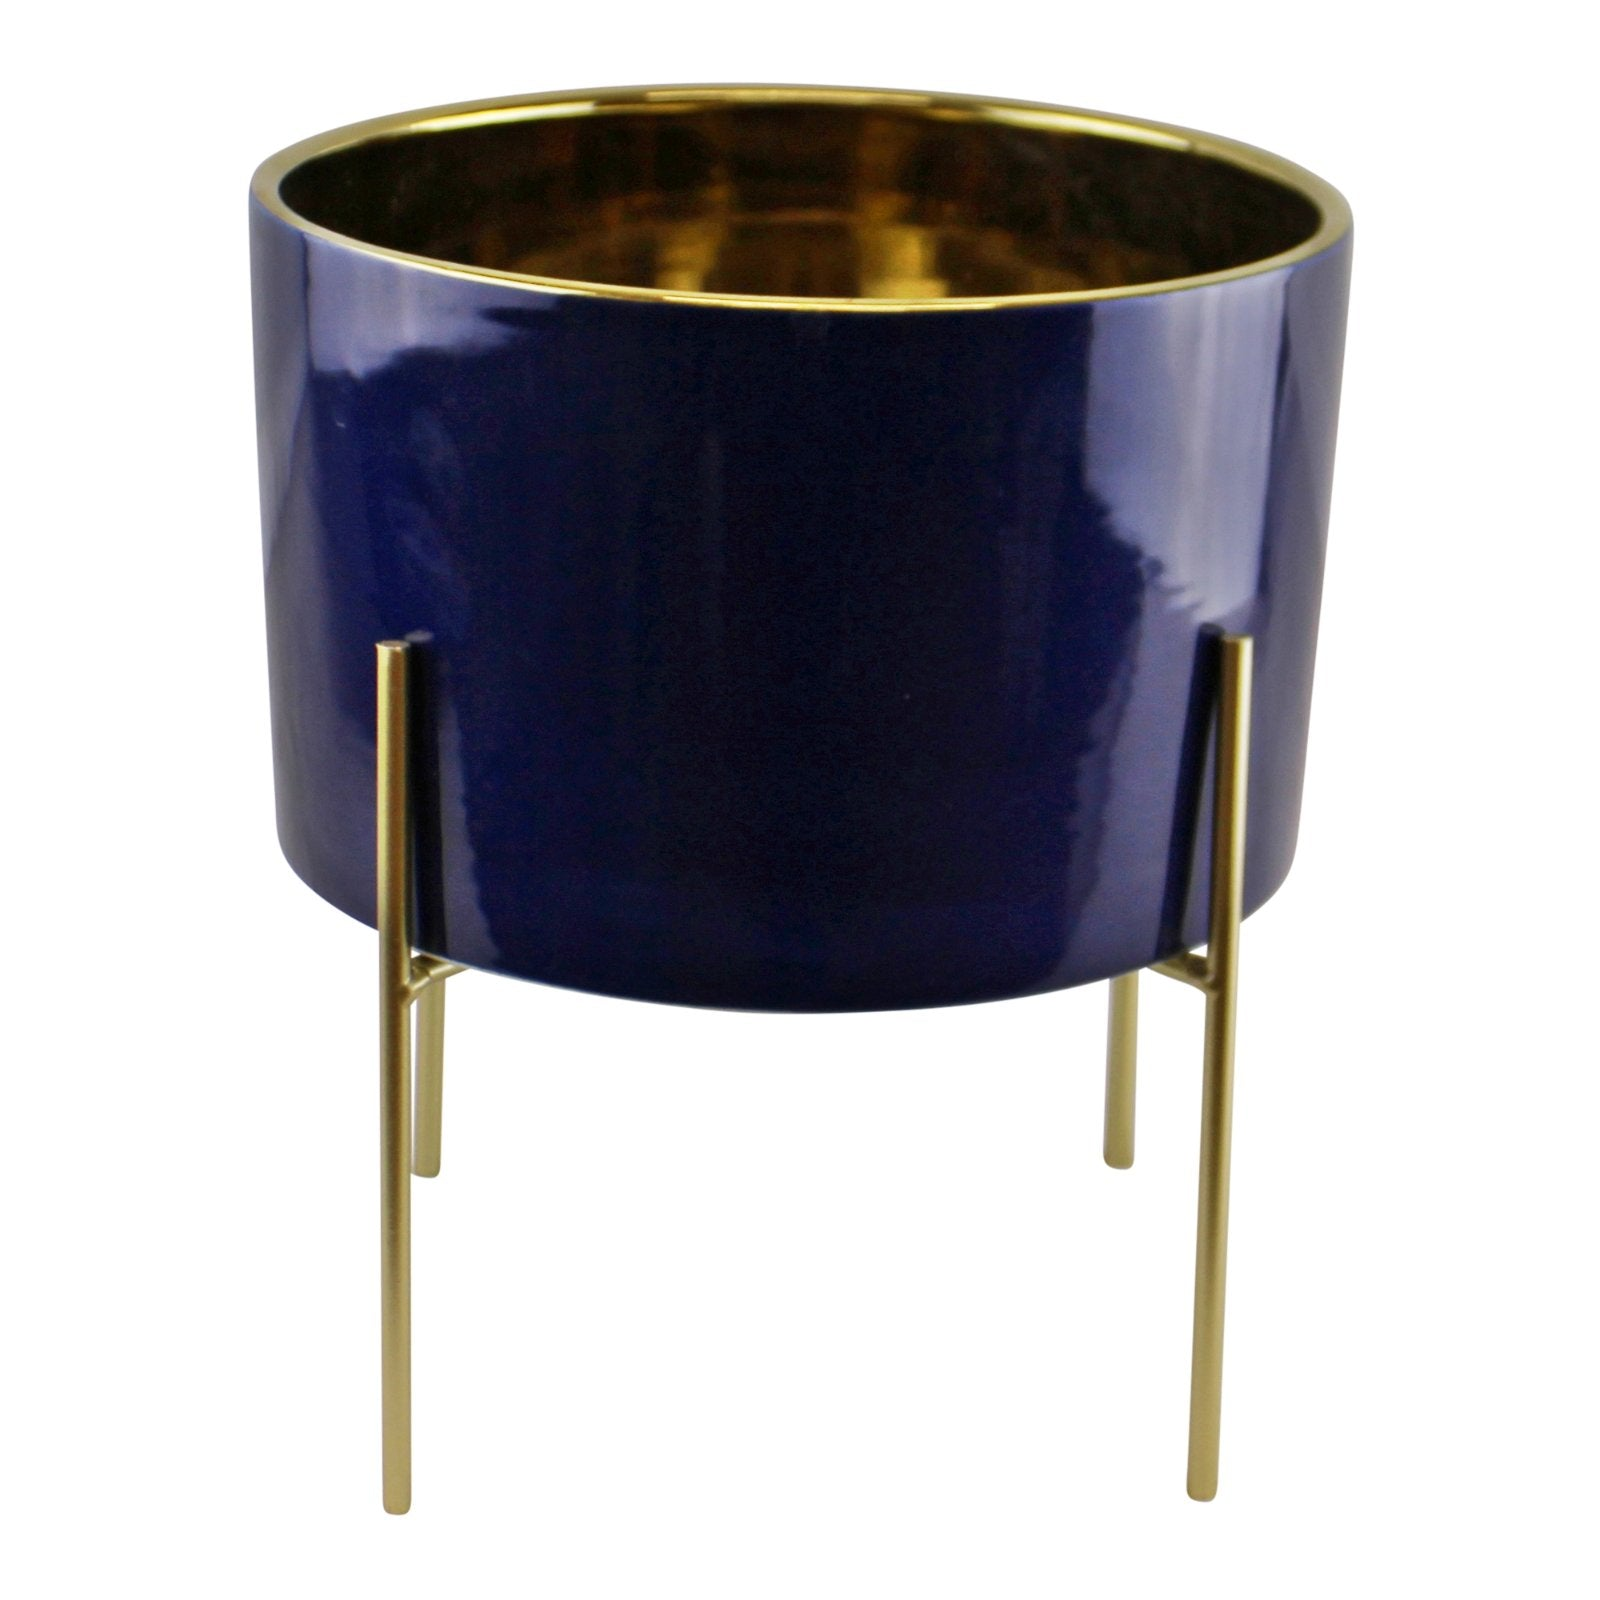 Large Ceramic Gold Lined Planter With Stand, Navy Blue, Lawn & Garden by Low Cost Gifts